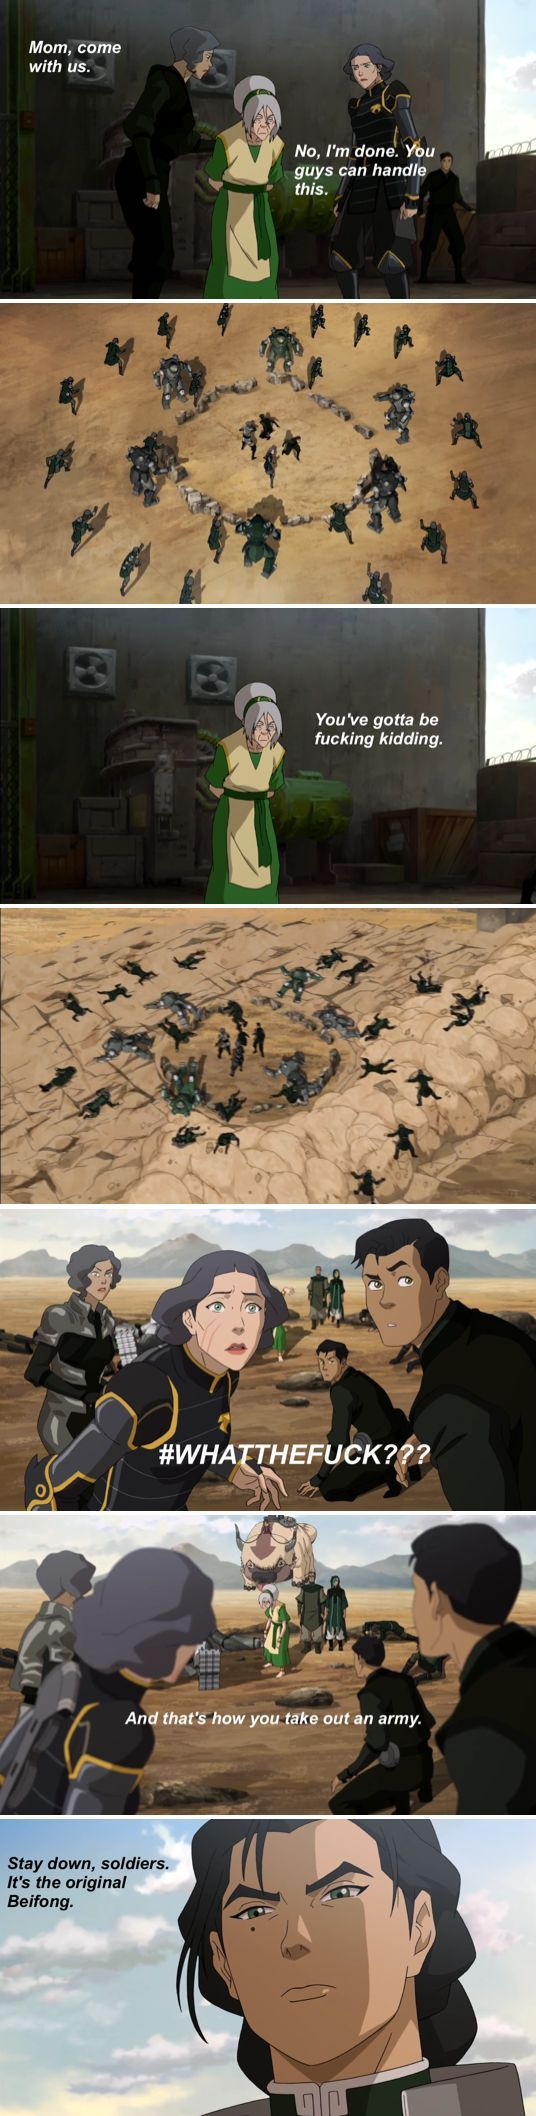 Aside from the faux text can we talk about how Toph became so strong she doesn't even need her arms to earth bend? Like you go Melon Lord!!